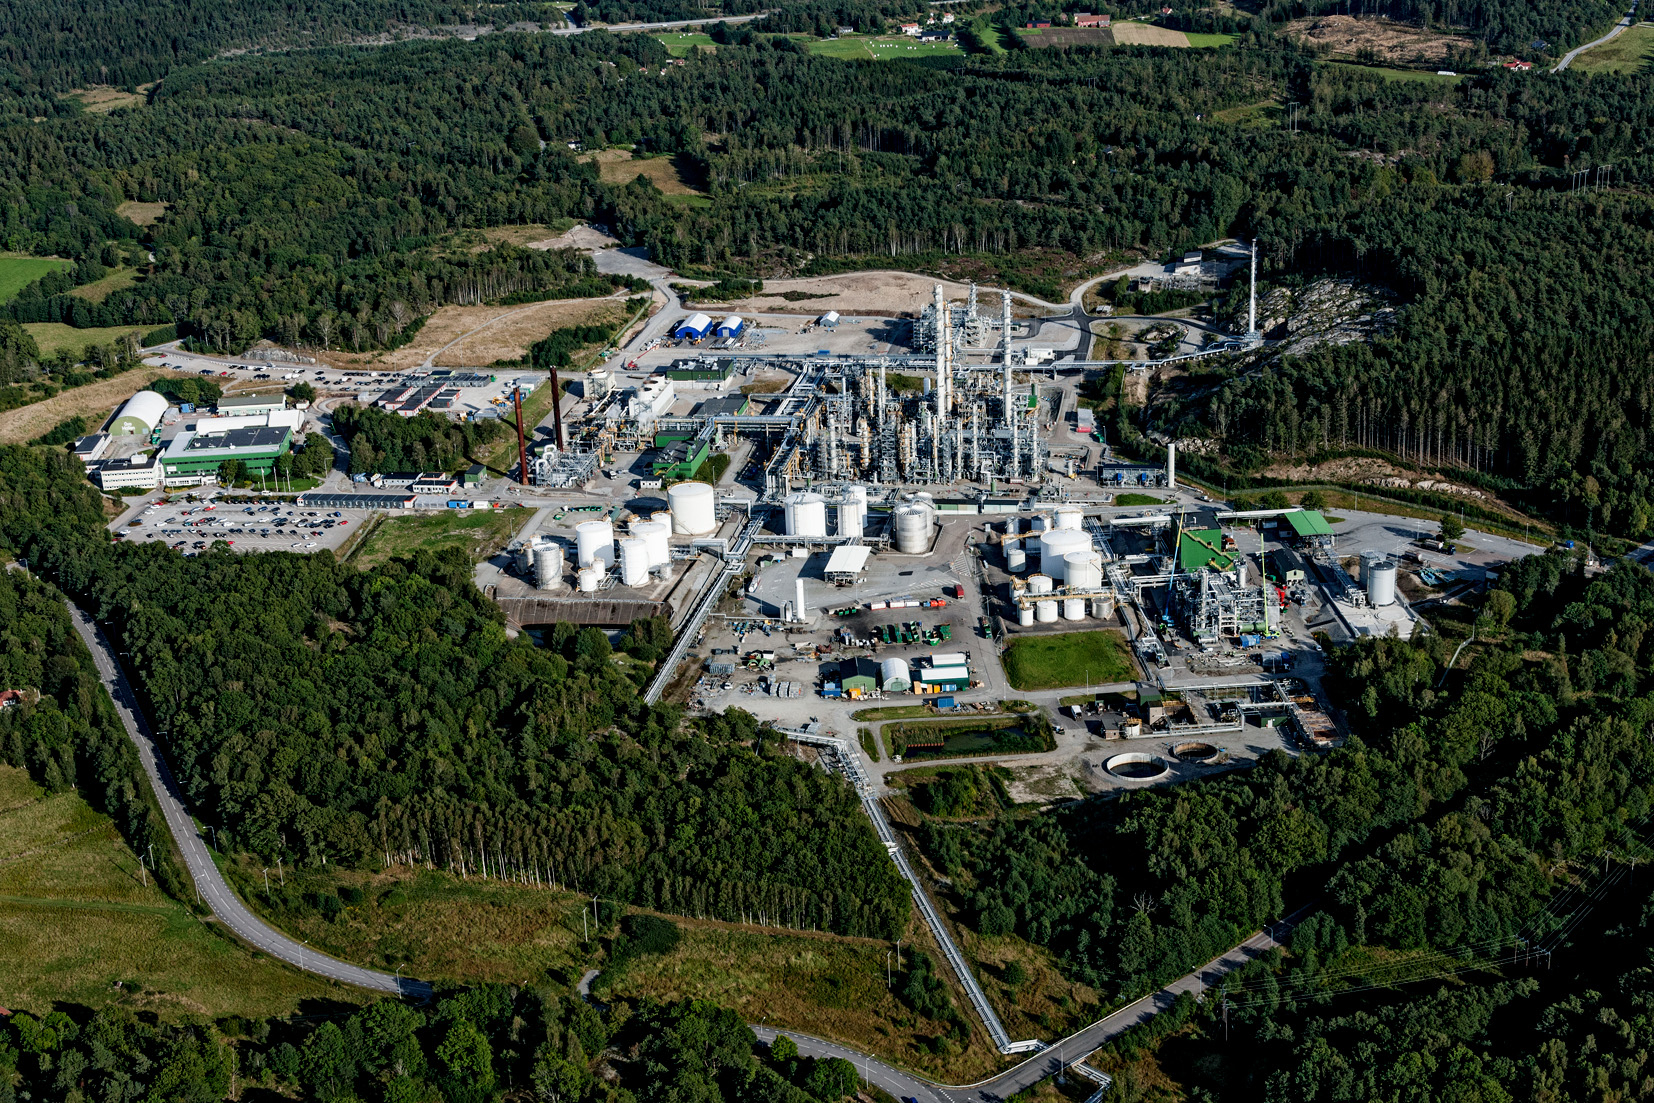 Perstorp will investigate the potential production of recycled methanol, using carbon dioxide and residual streams, at its Swedish facility in Stenungsund (Source: Perstorp)